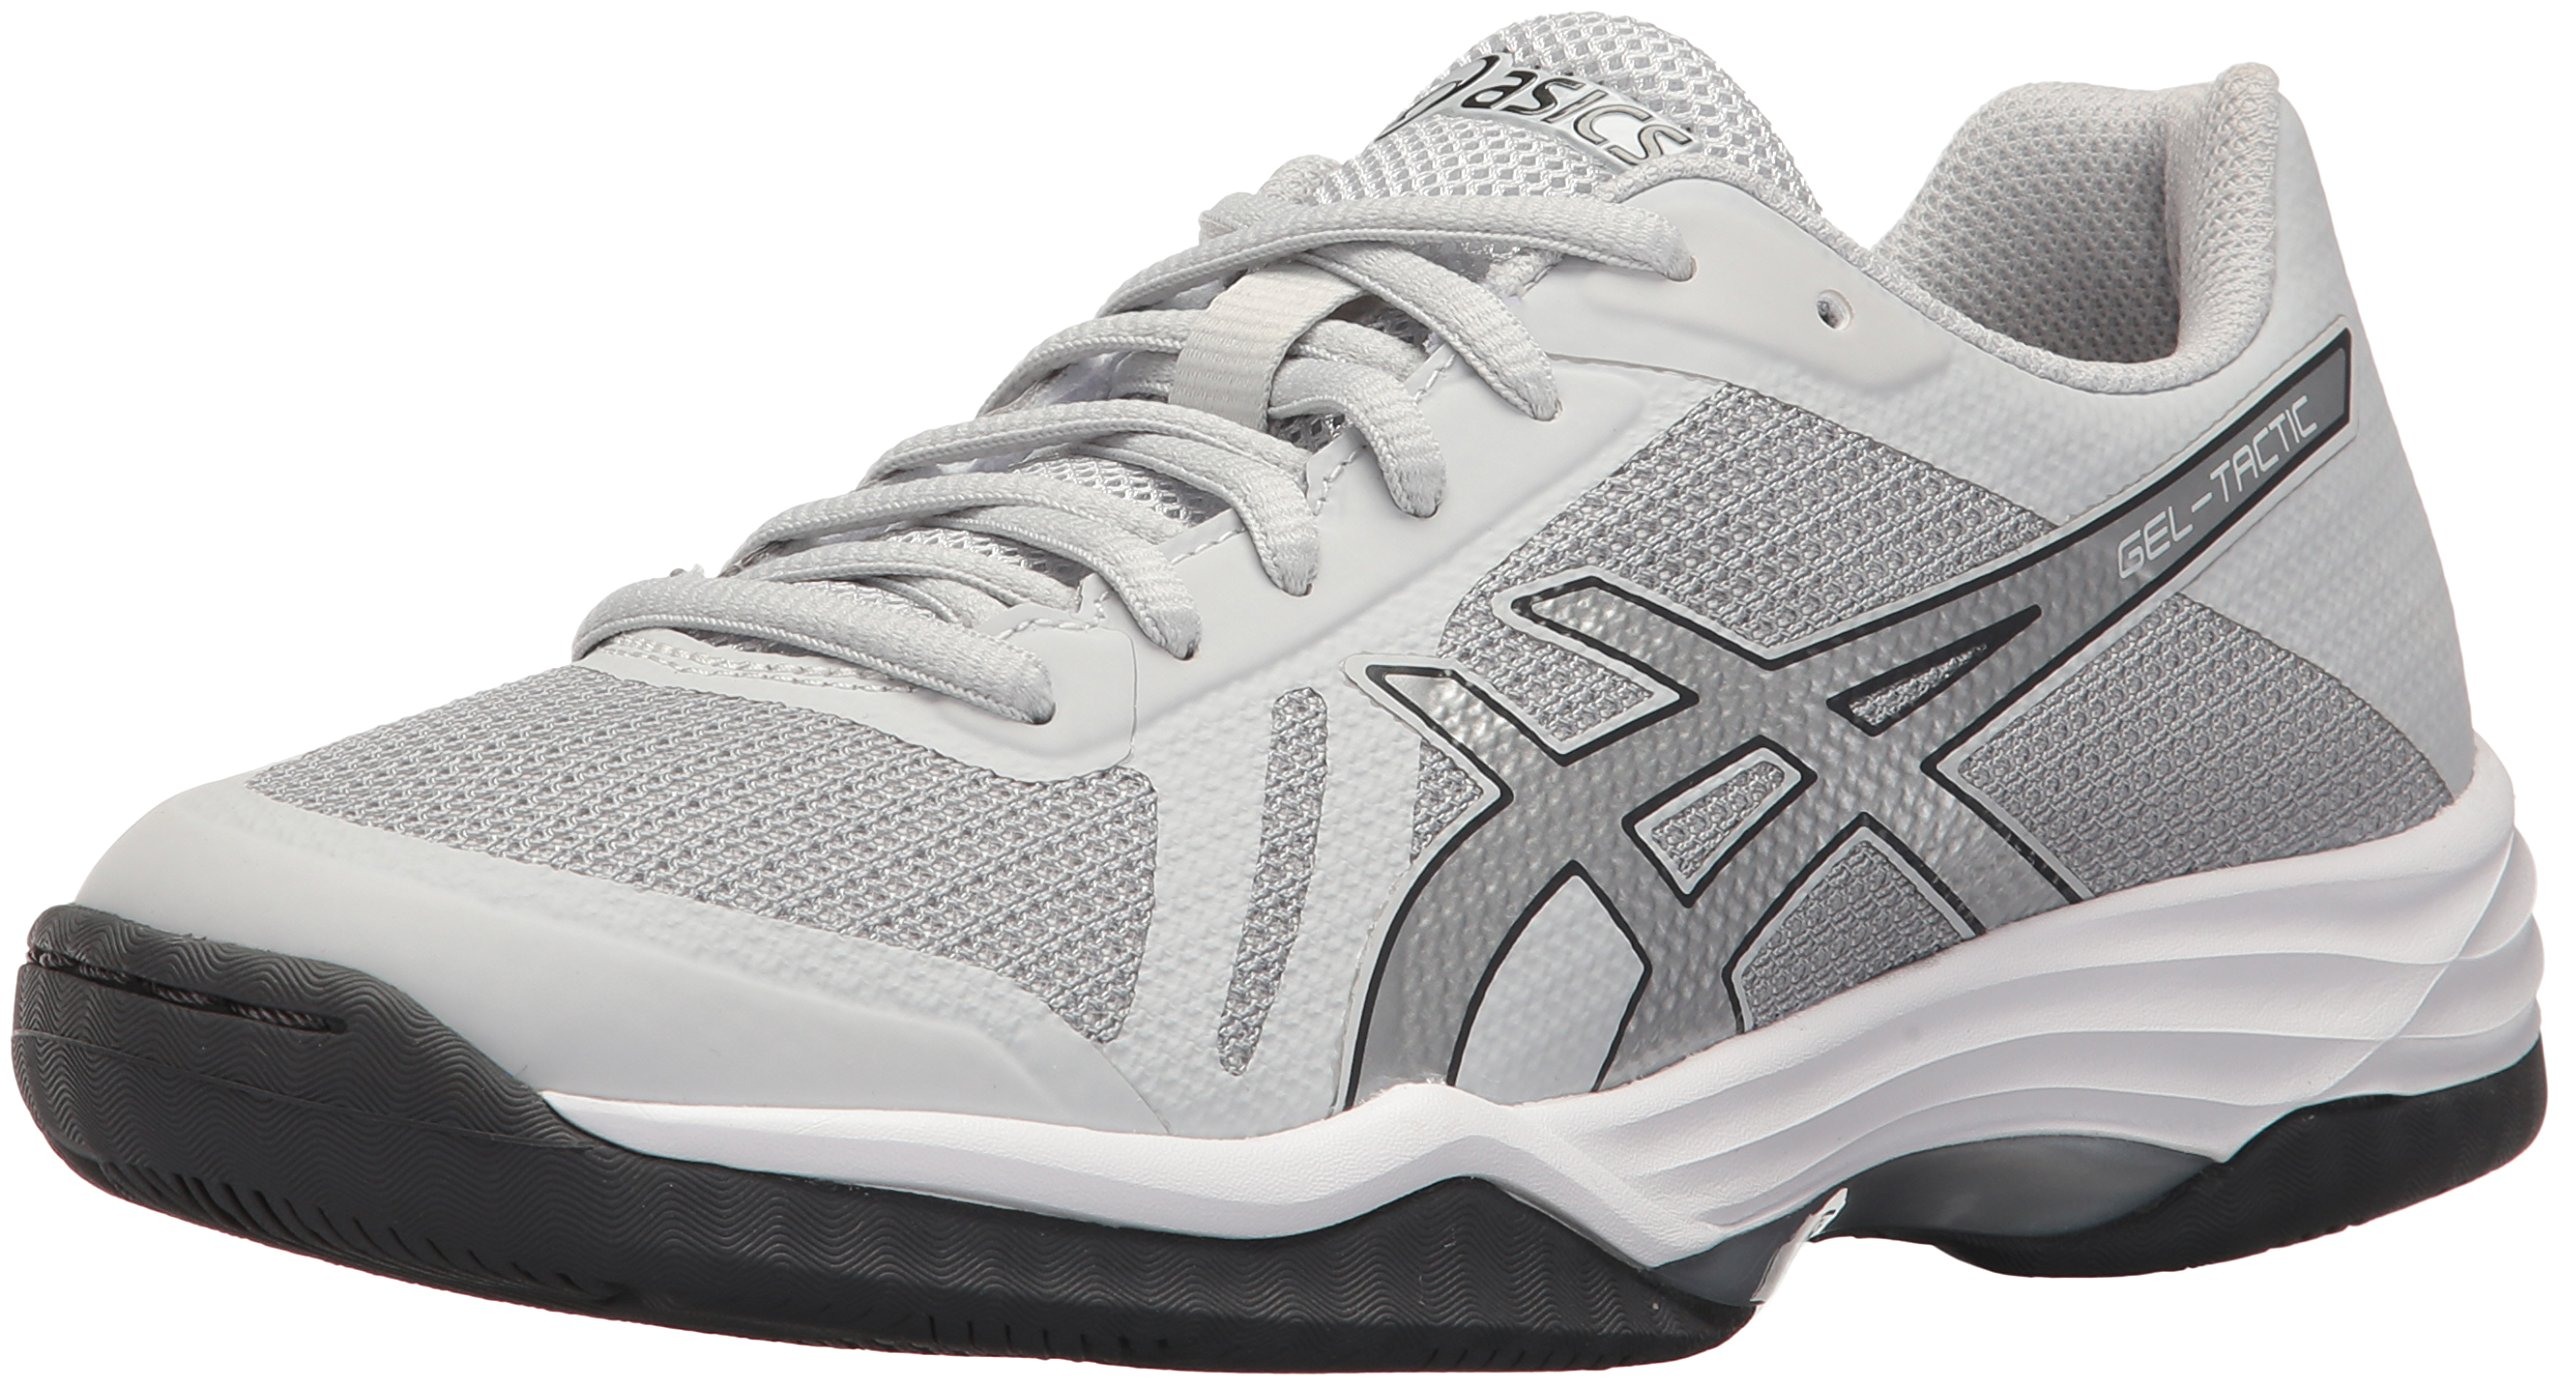 ASICS Women's Gel-Tactic 2 Volleyball Shoe, Glacier Grey/Silver/Dark Grey, 11 Medium US